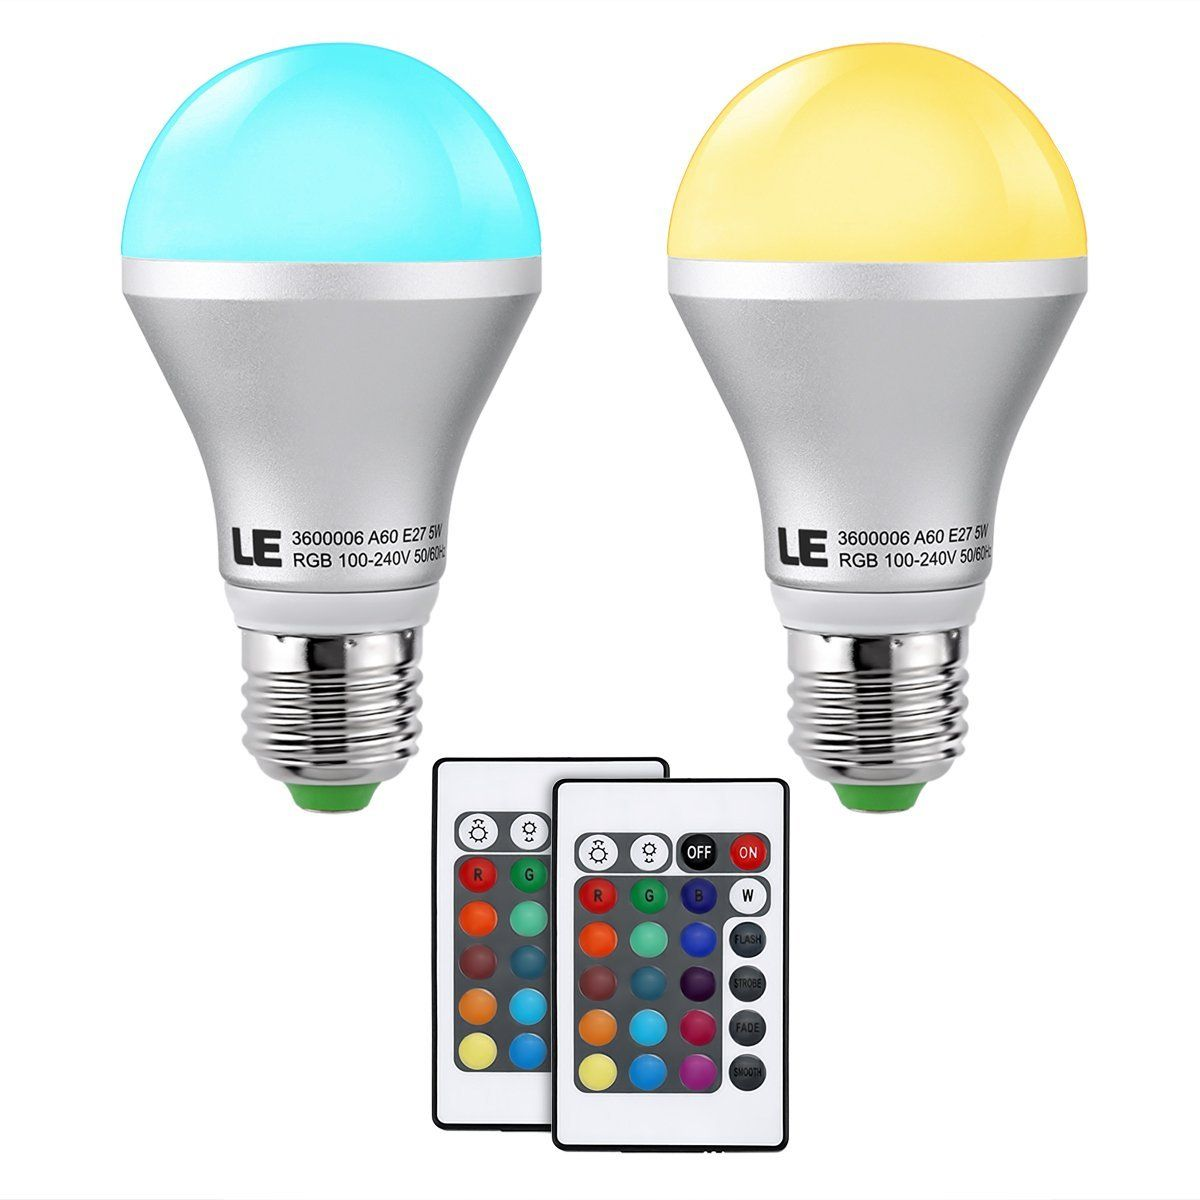 How To Change The Color Of An Led Light Krm Light Led Light Bulbs Rgb Led Lights Led Lights